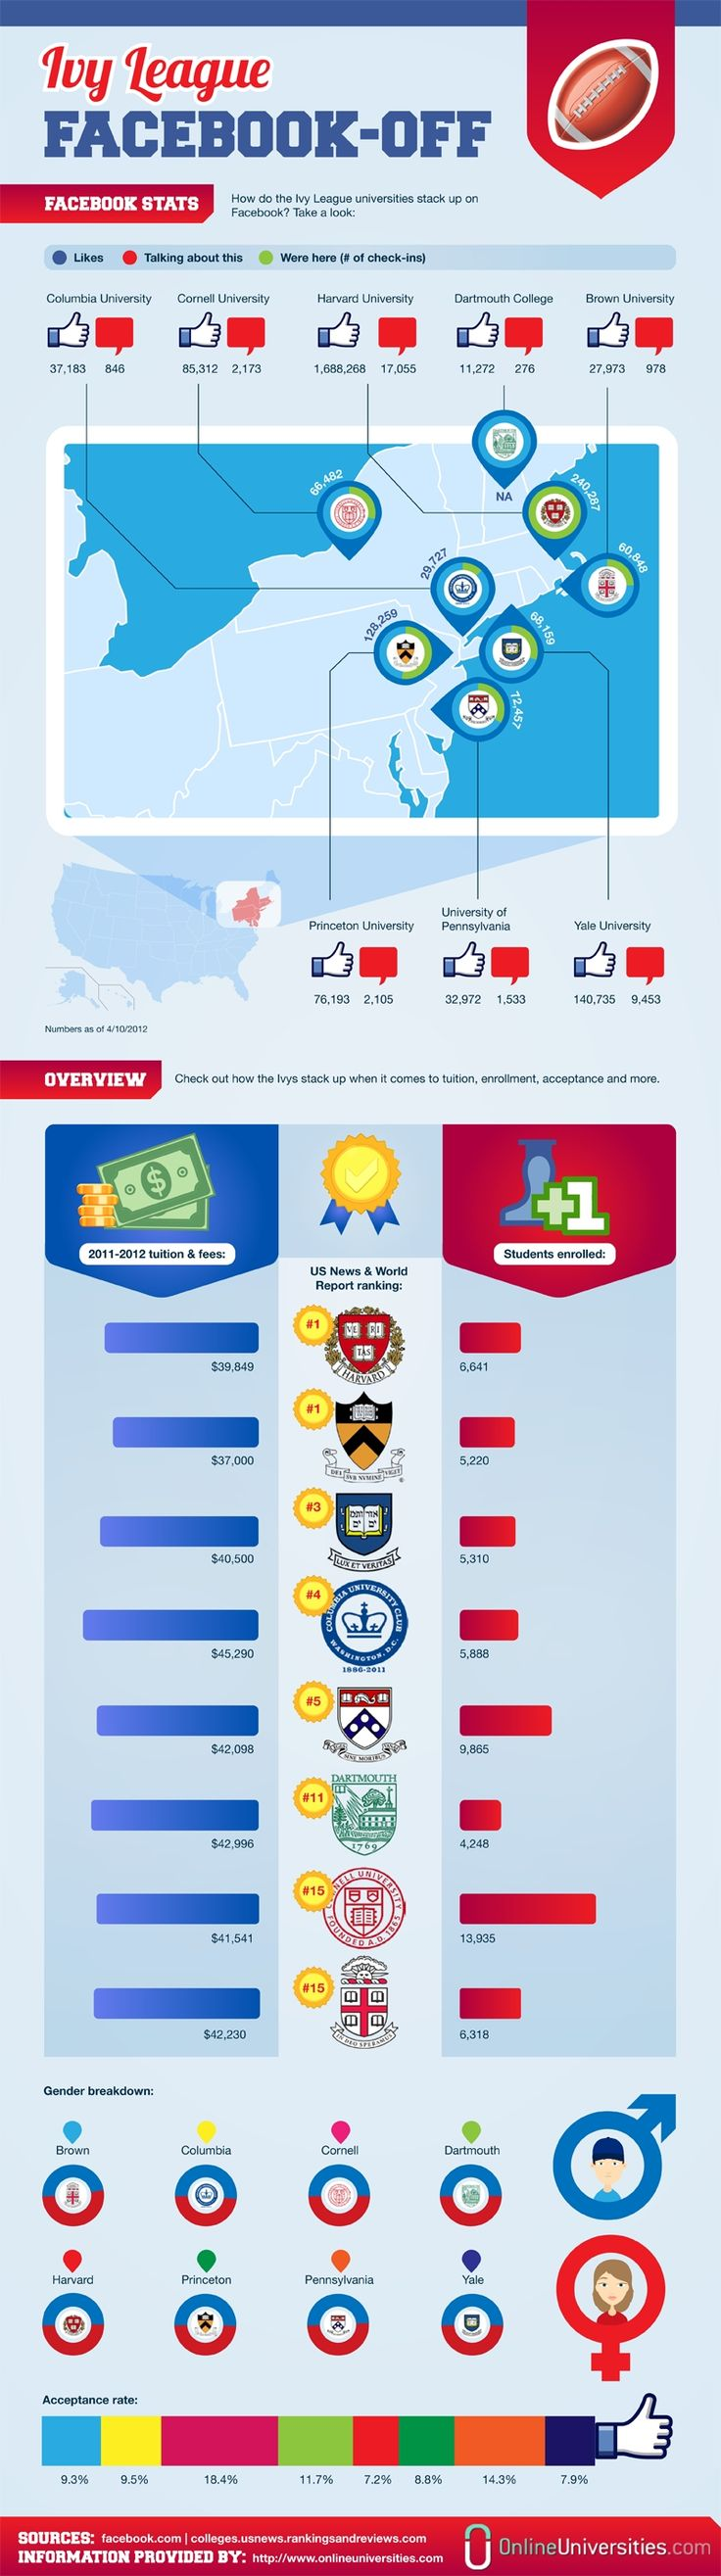 INFOGRAPHIC: Facebook Birthpla